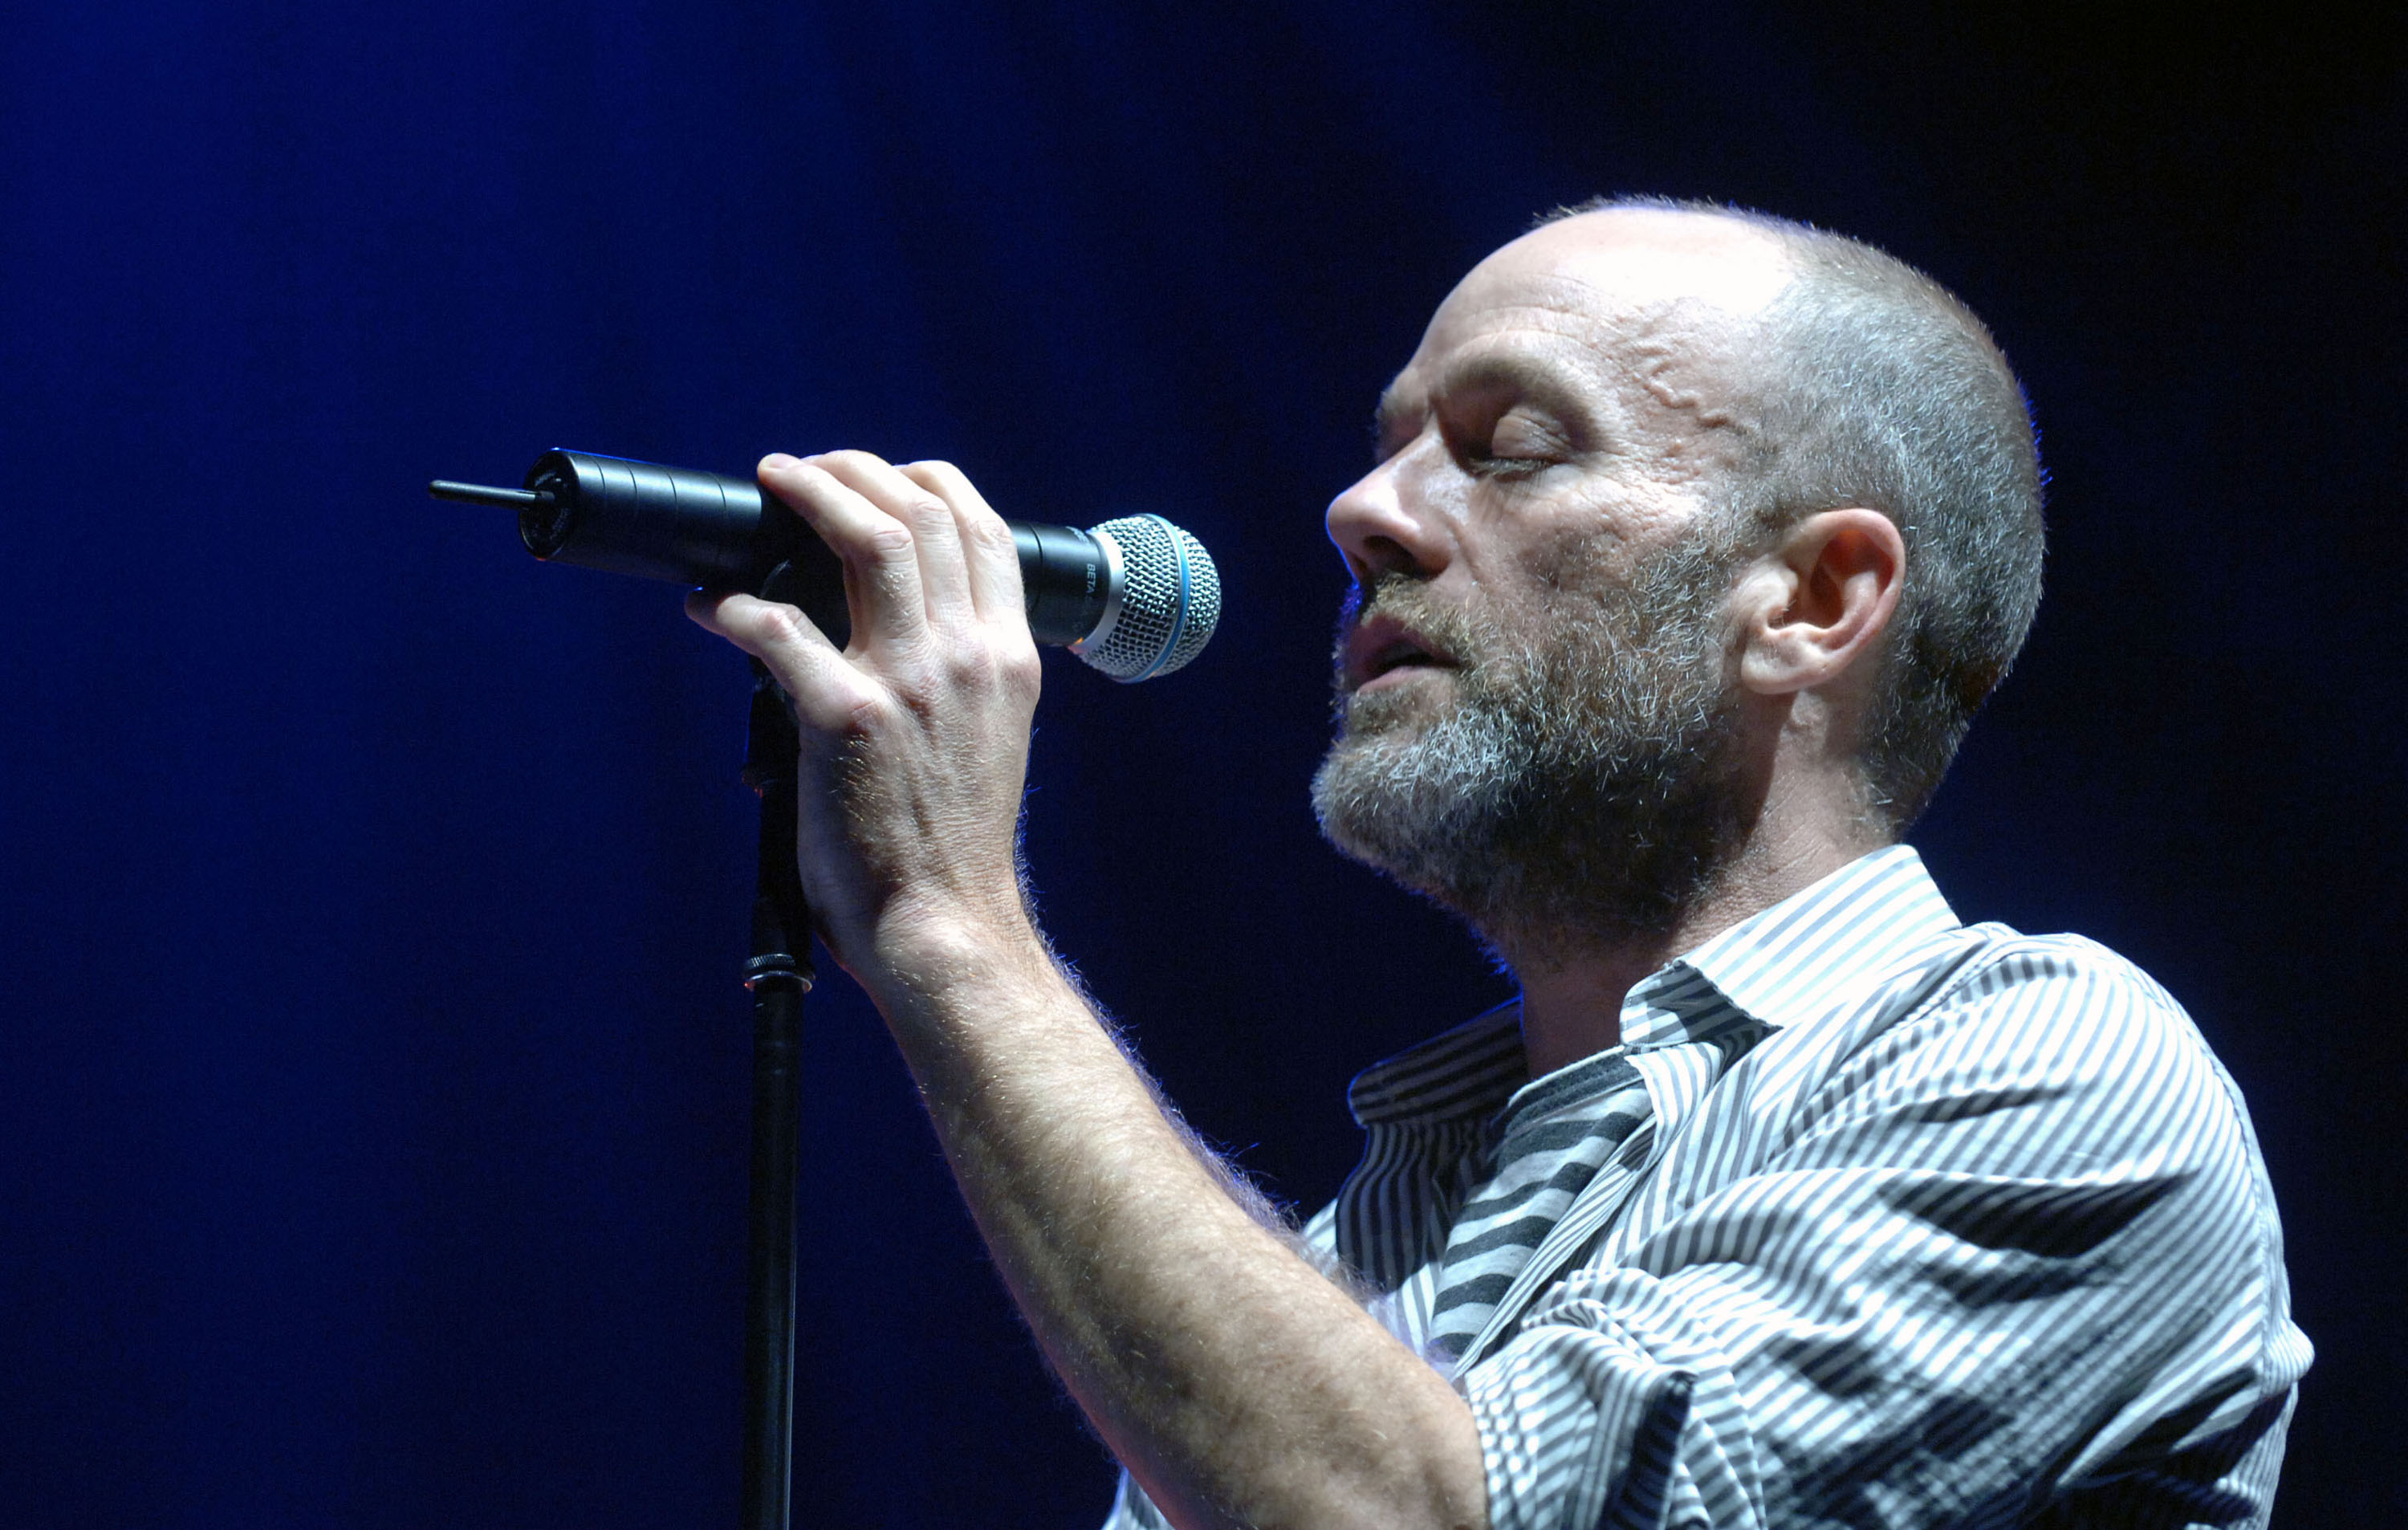 Michael Stipe of R.E.M. joins Chris Martin of Coldplay to perform 'NIGHTSWIMMING' (Photo by Rick Diamond/WireImage)